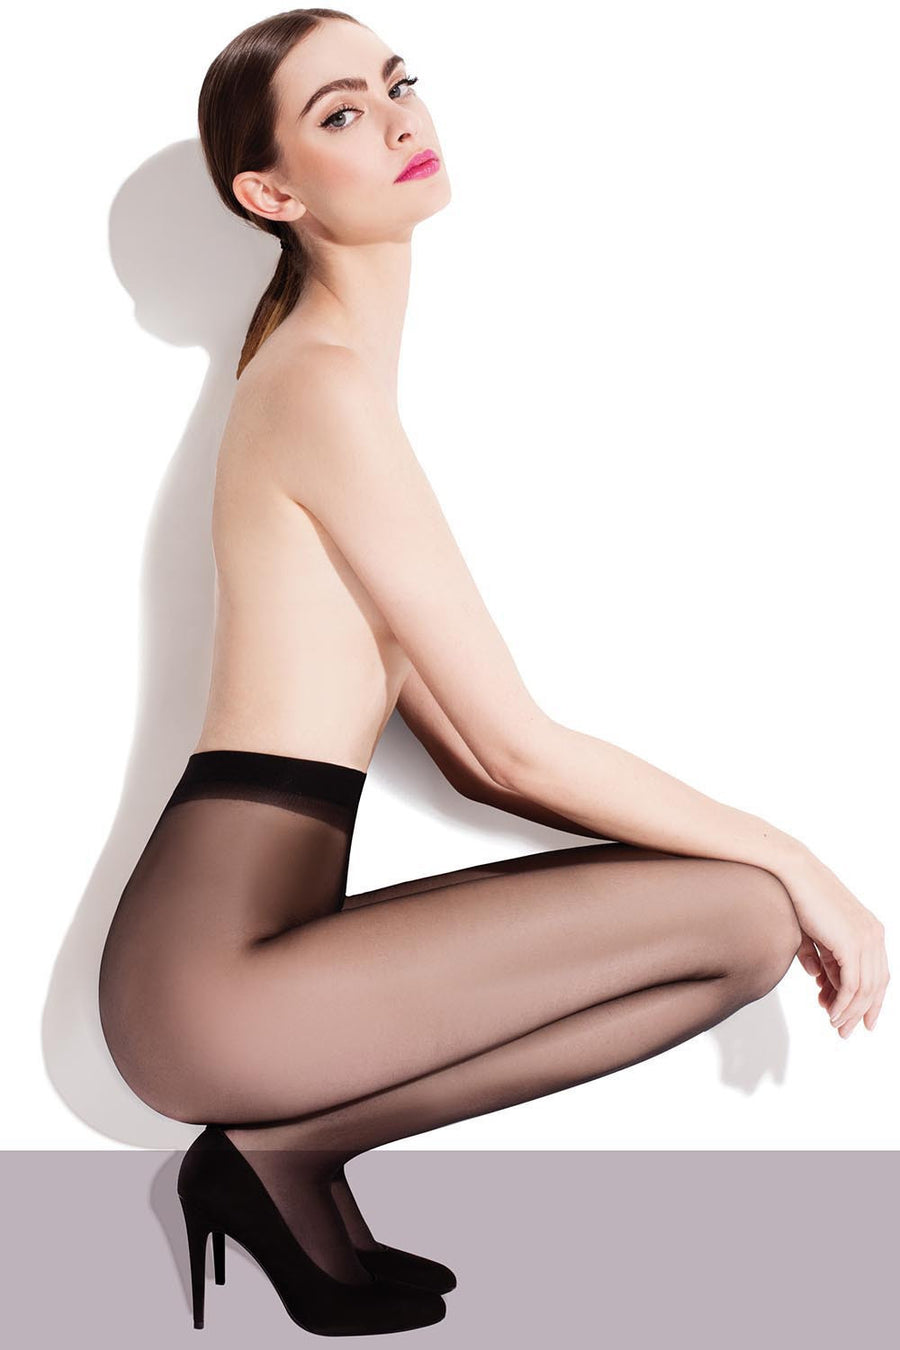 Tights 71120 Fiore-Hosiery & Legwear, Stockings and Tights for Women-Fiore-TRESFANCY